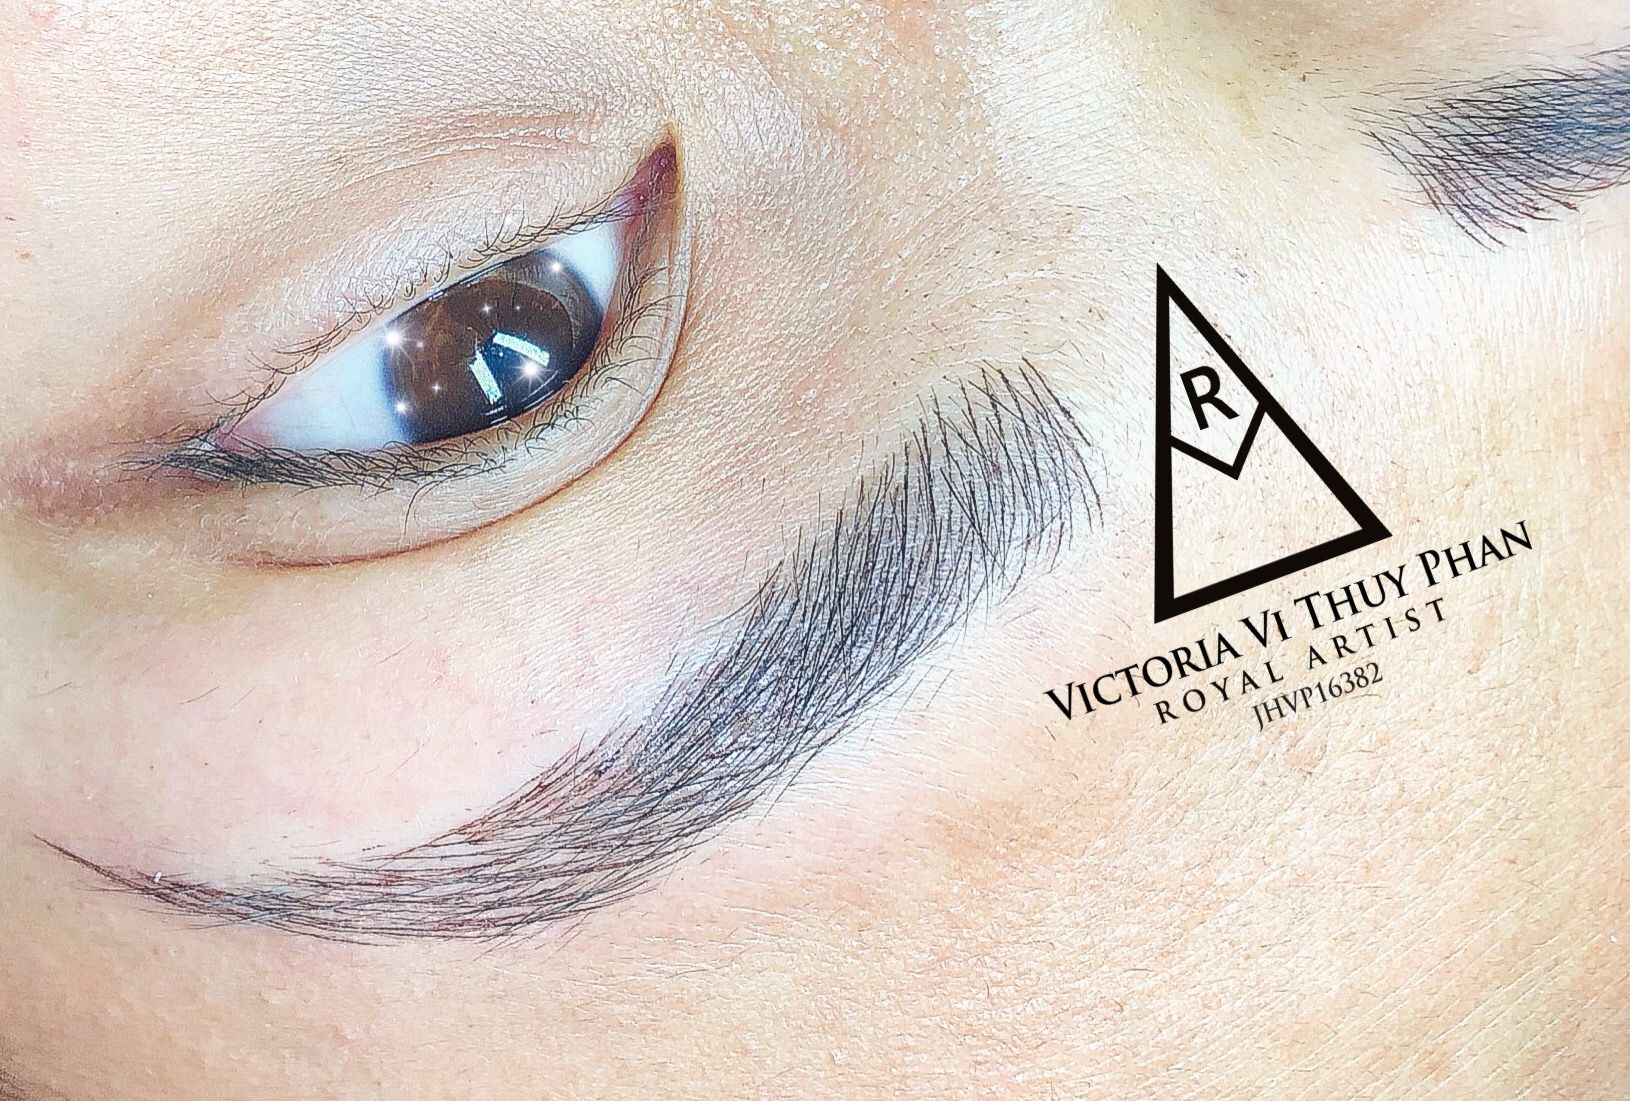 Idea by victoria thuy phan on phibrows royal artist